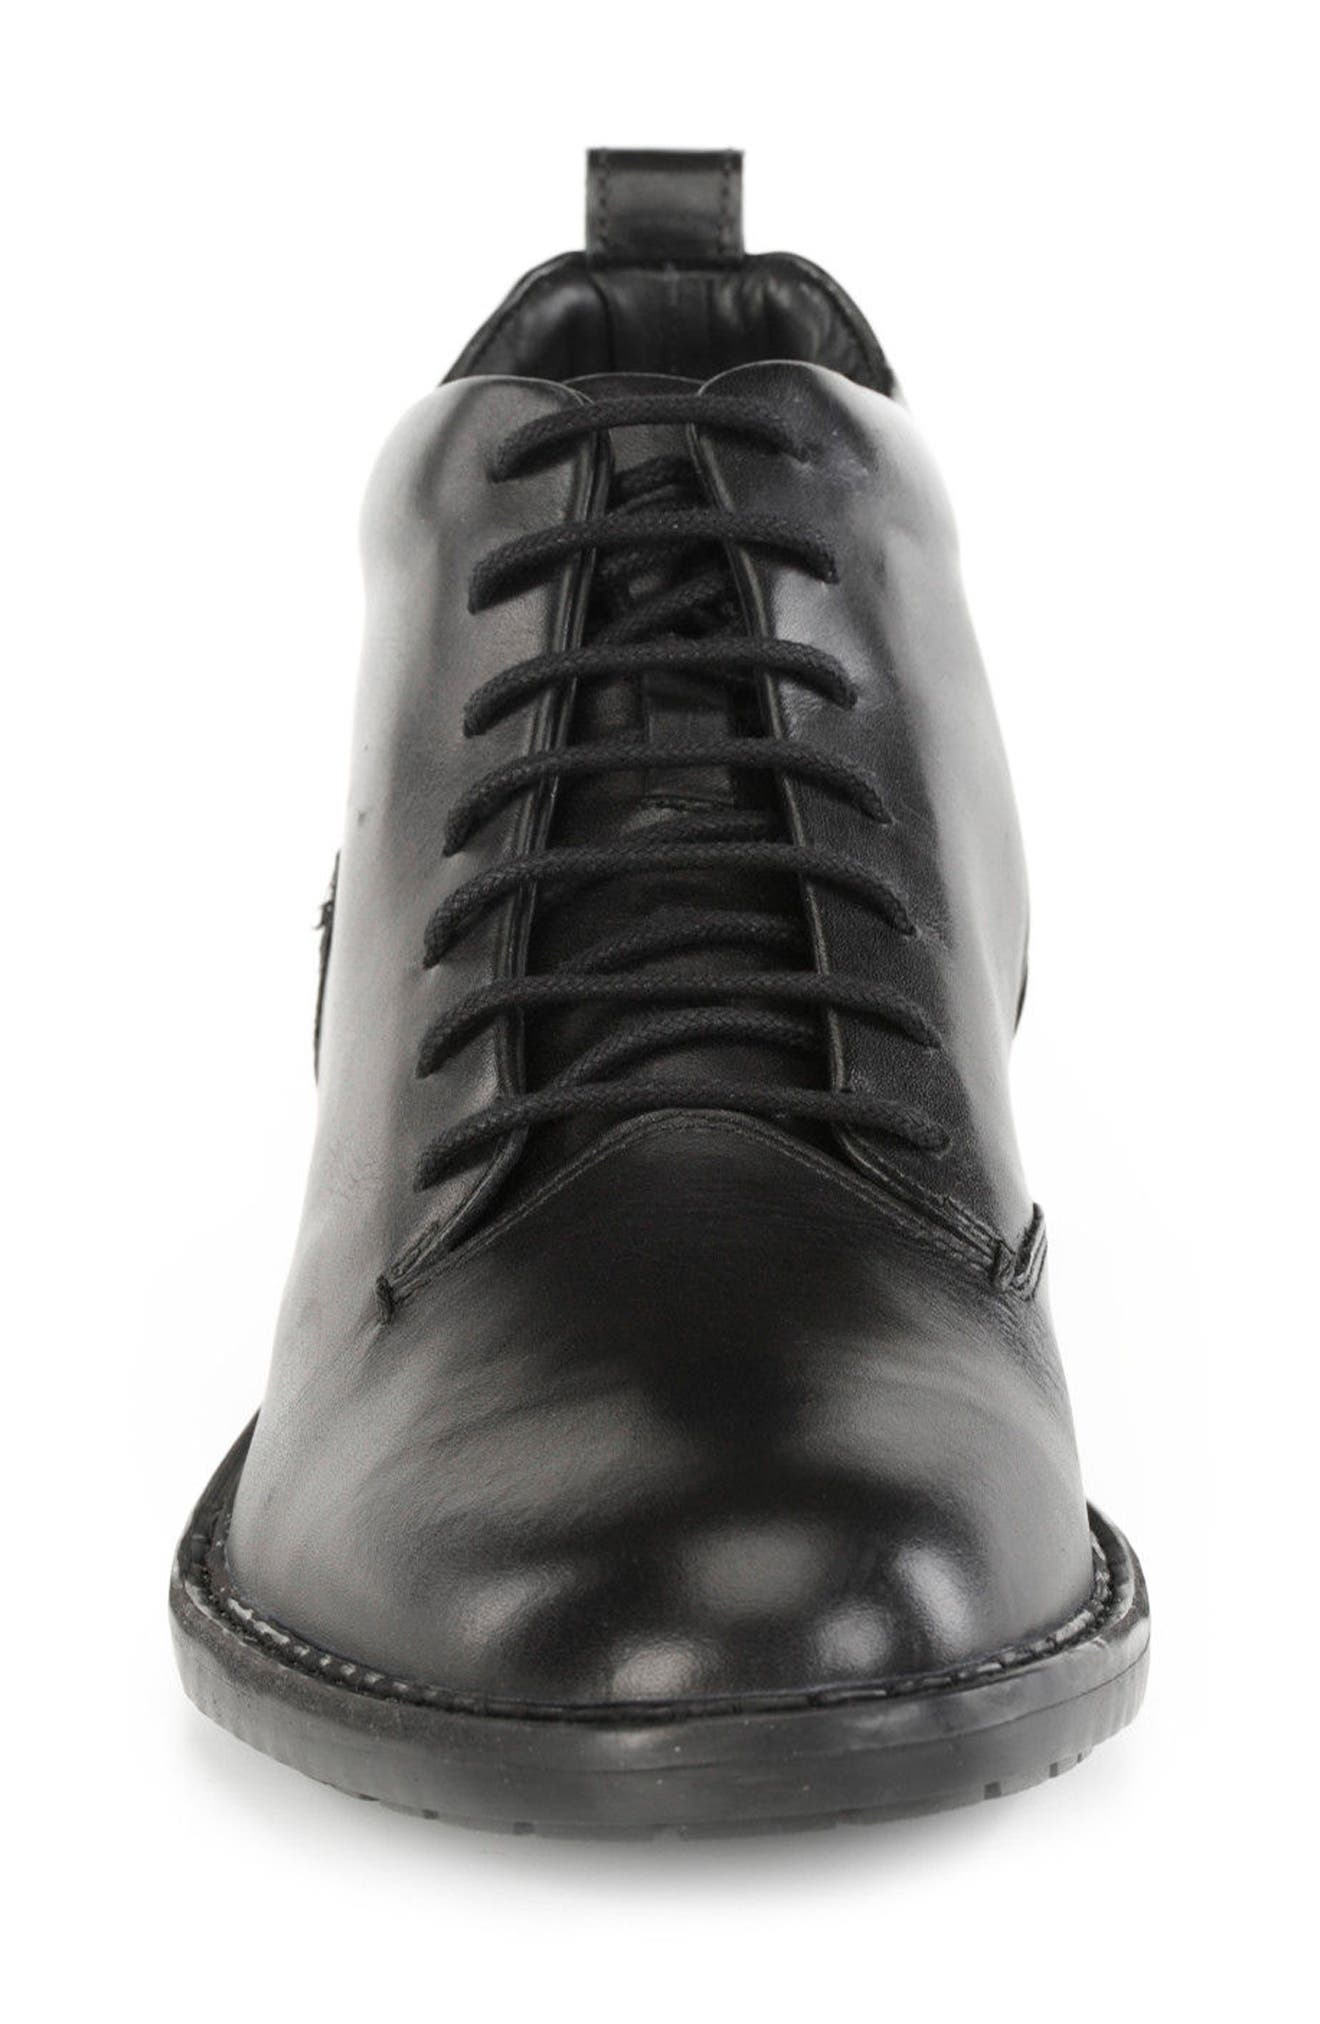 Kapsian Plain Toe Boot,                             Alternate thumbnail 4, color,                             001